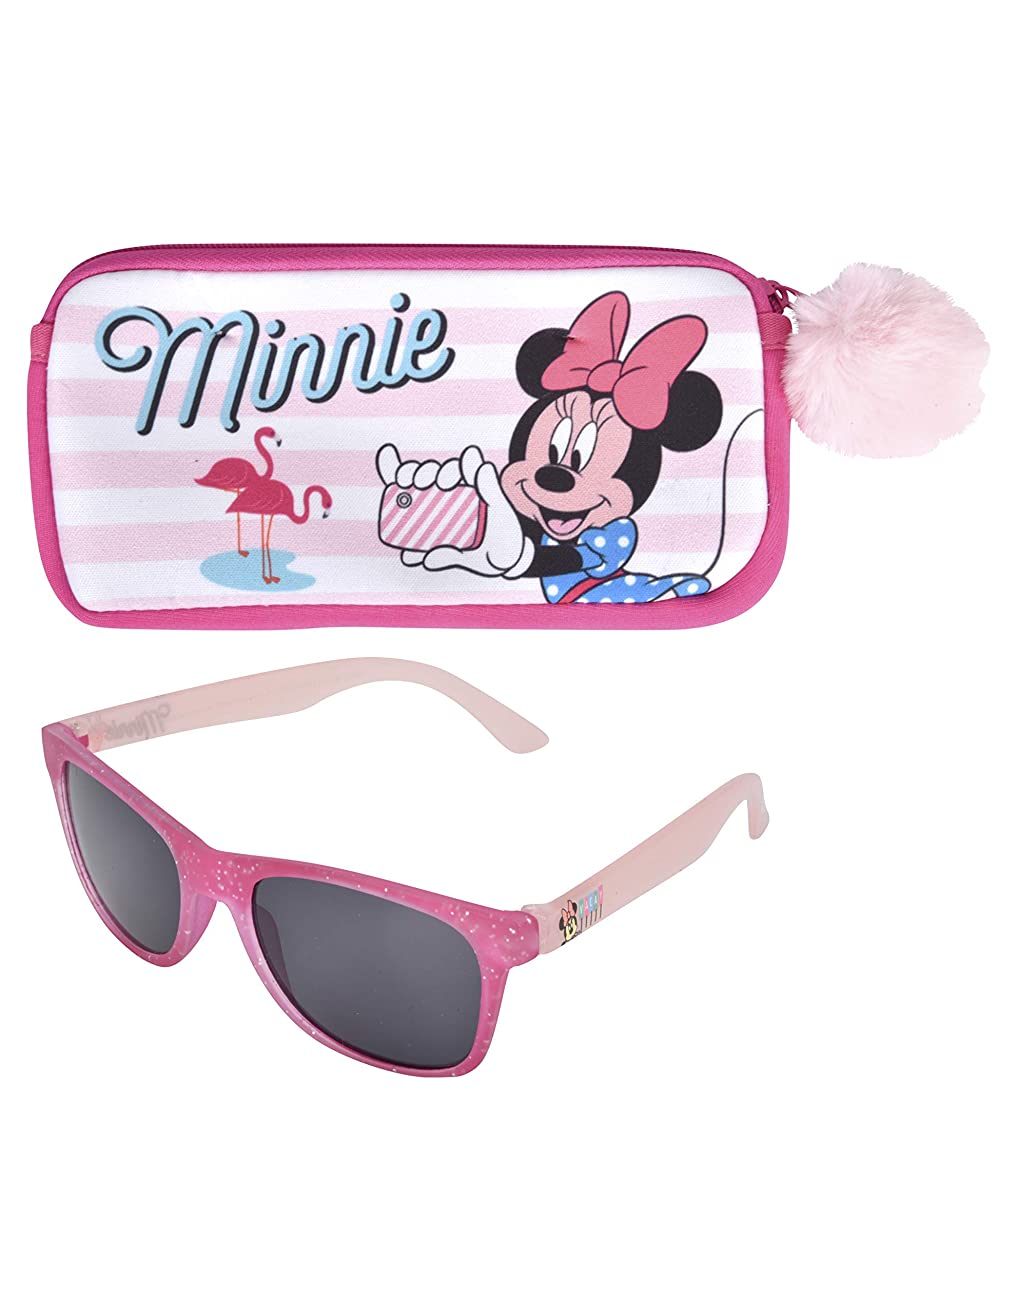 KIDS SUNGLASSES – GIRLS 100% UV SUNGLASSES W BONUS FUZZY HANDLE CASE, FROZEN, MINNIE, MOANA, TROLLS